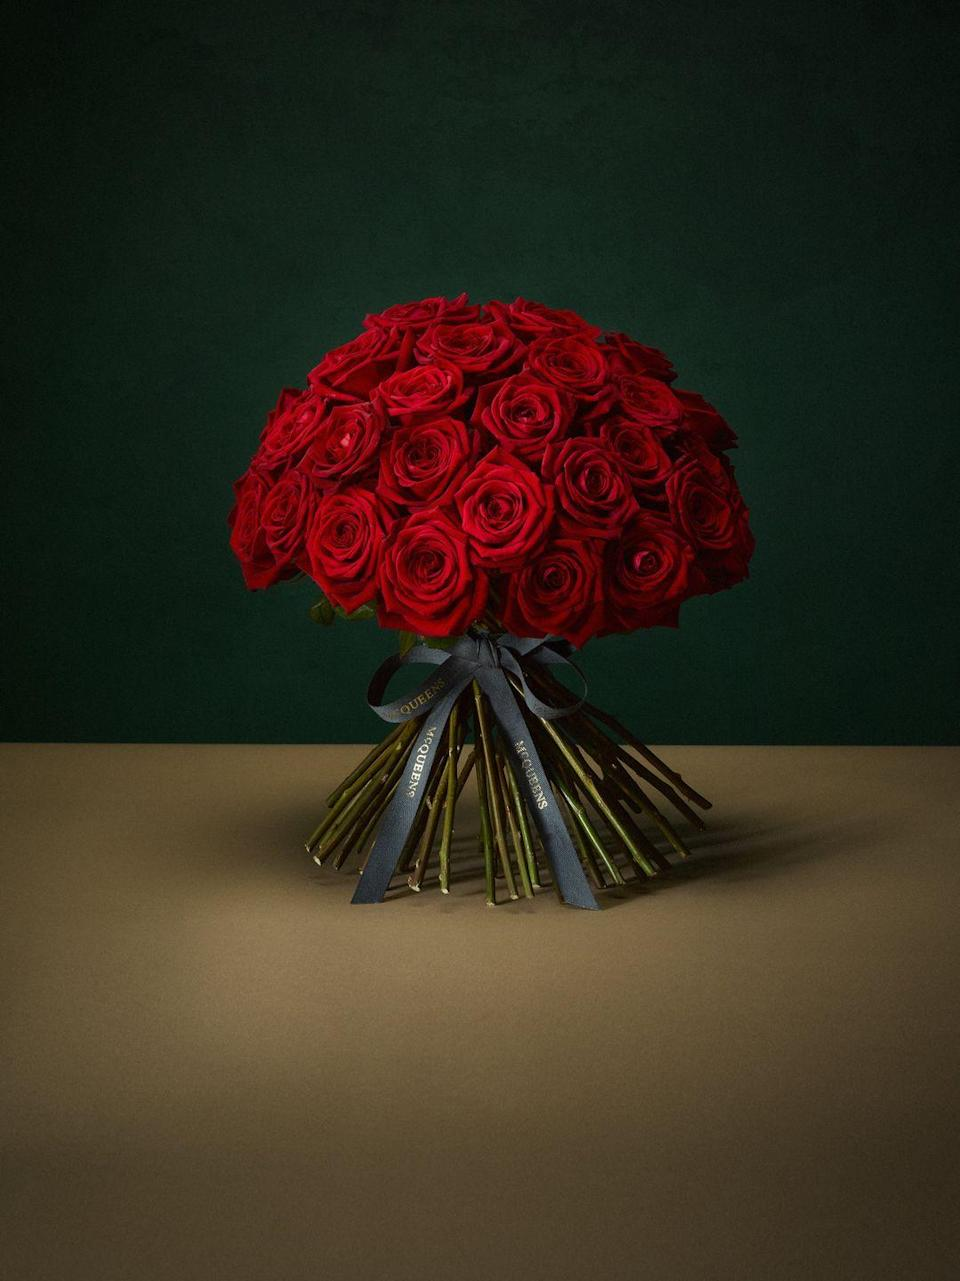 "<p>…for nothing says 'romance' quite like a hand-tied bunch of McQueens classic red blooms. </p><p>From £215, McQueens</p><p><a class=""link rapid-noclick-resp"" href=""https://mcqueens.co.uk/product/amour/"" rel=""nofollow noopener"" target=""_blank"" data-ylk=""slk:SHOP NOW"">SHOP NOW</a></p>"